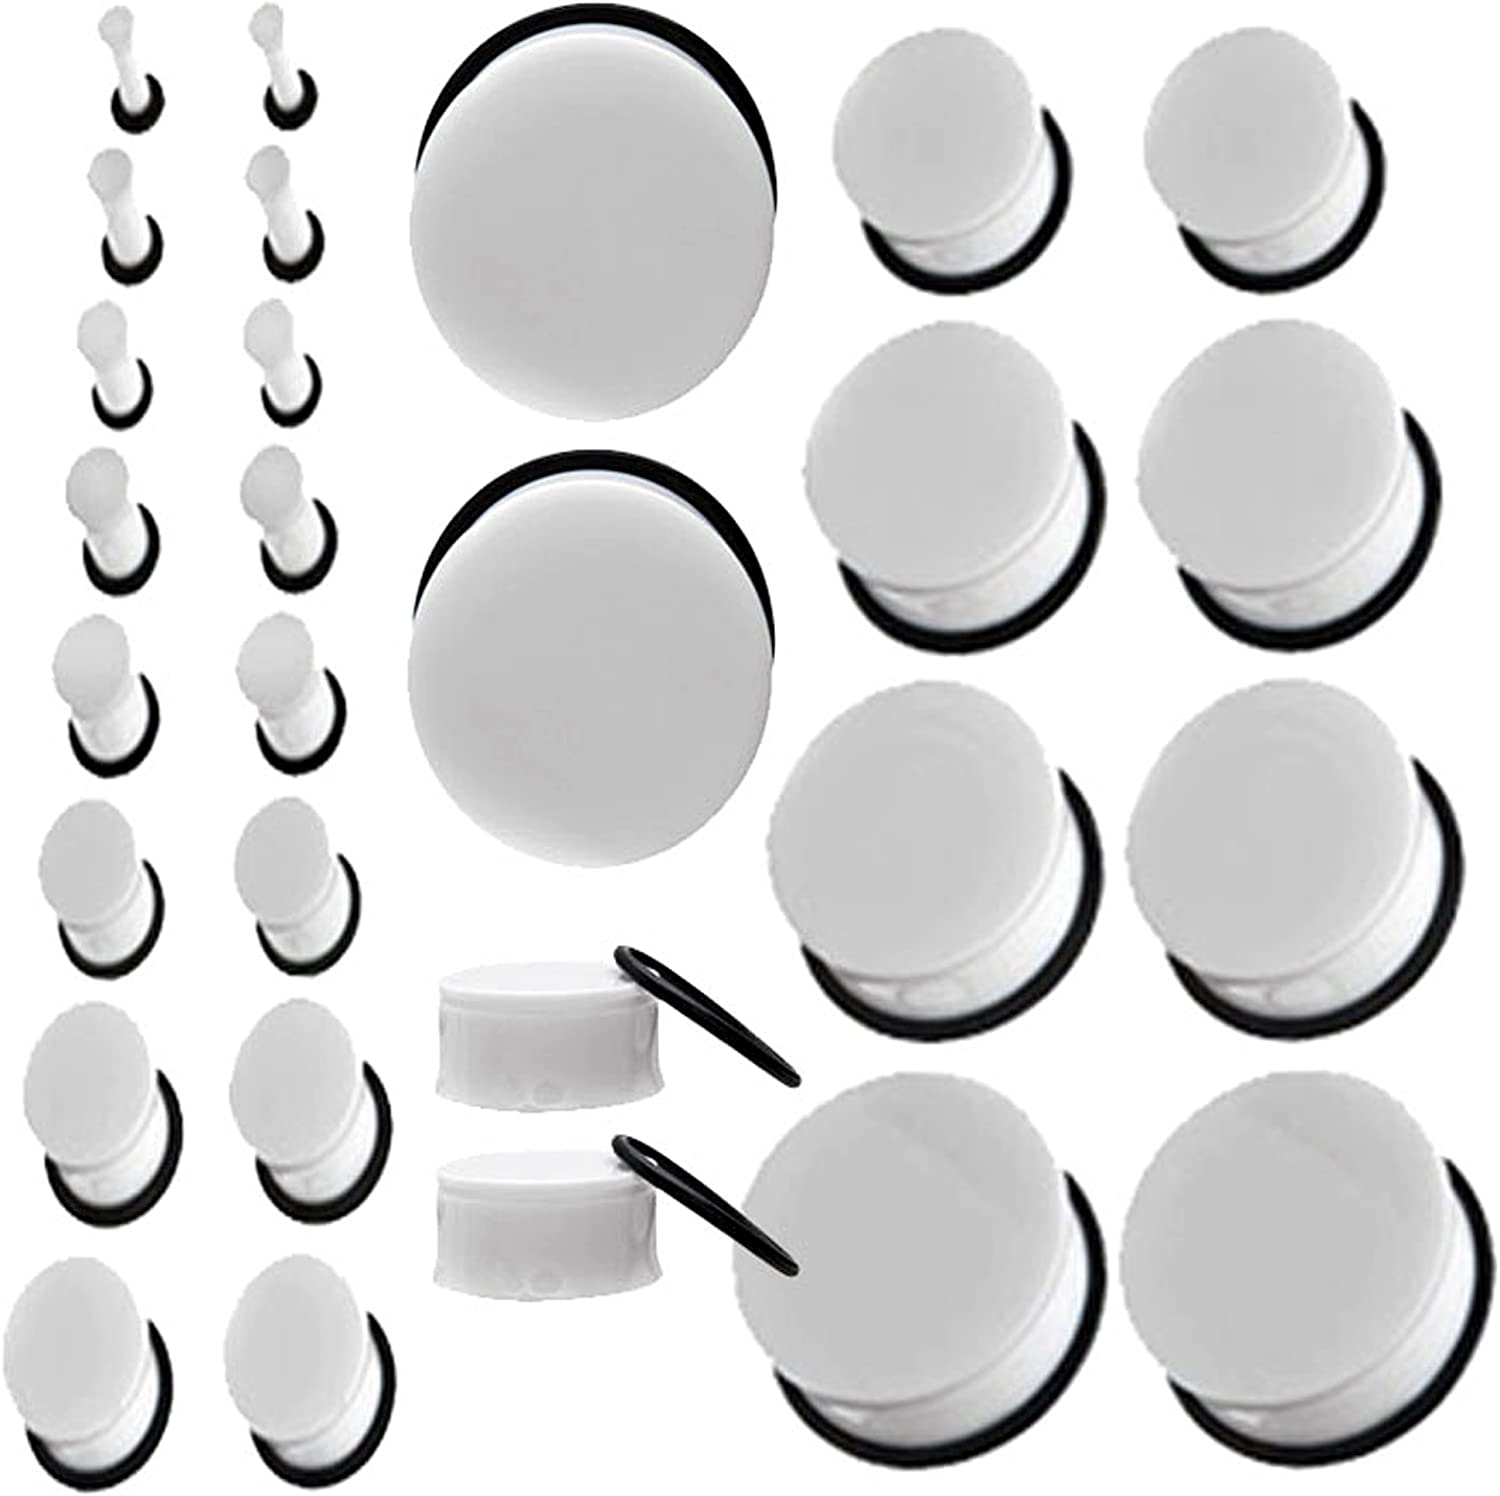 MallGoodies White Single Flare Acrylic Earlets Solid Ear Plugs 10G Gauge to 1-3//16 Inch 1 Pair Each Size 2.5mm to 30mm